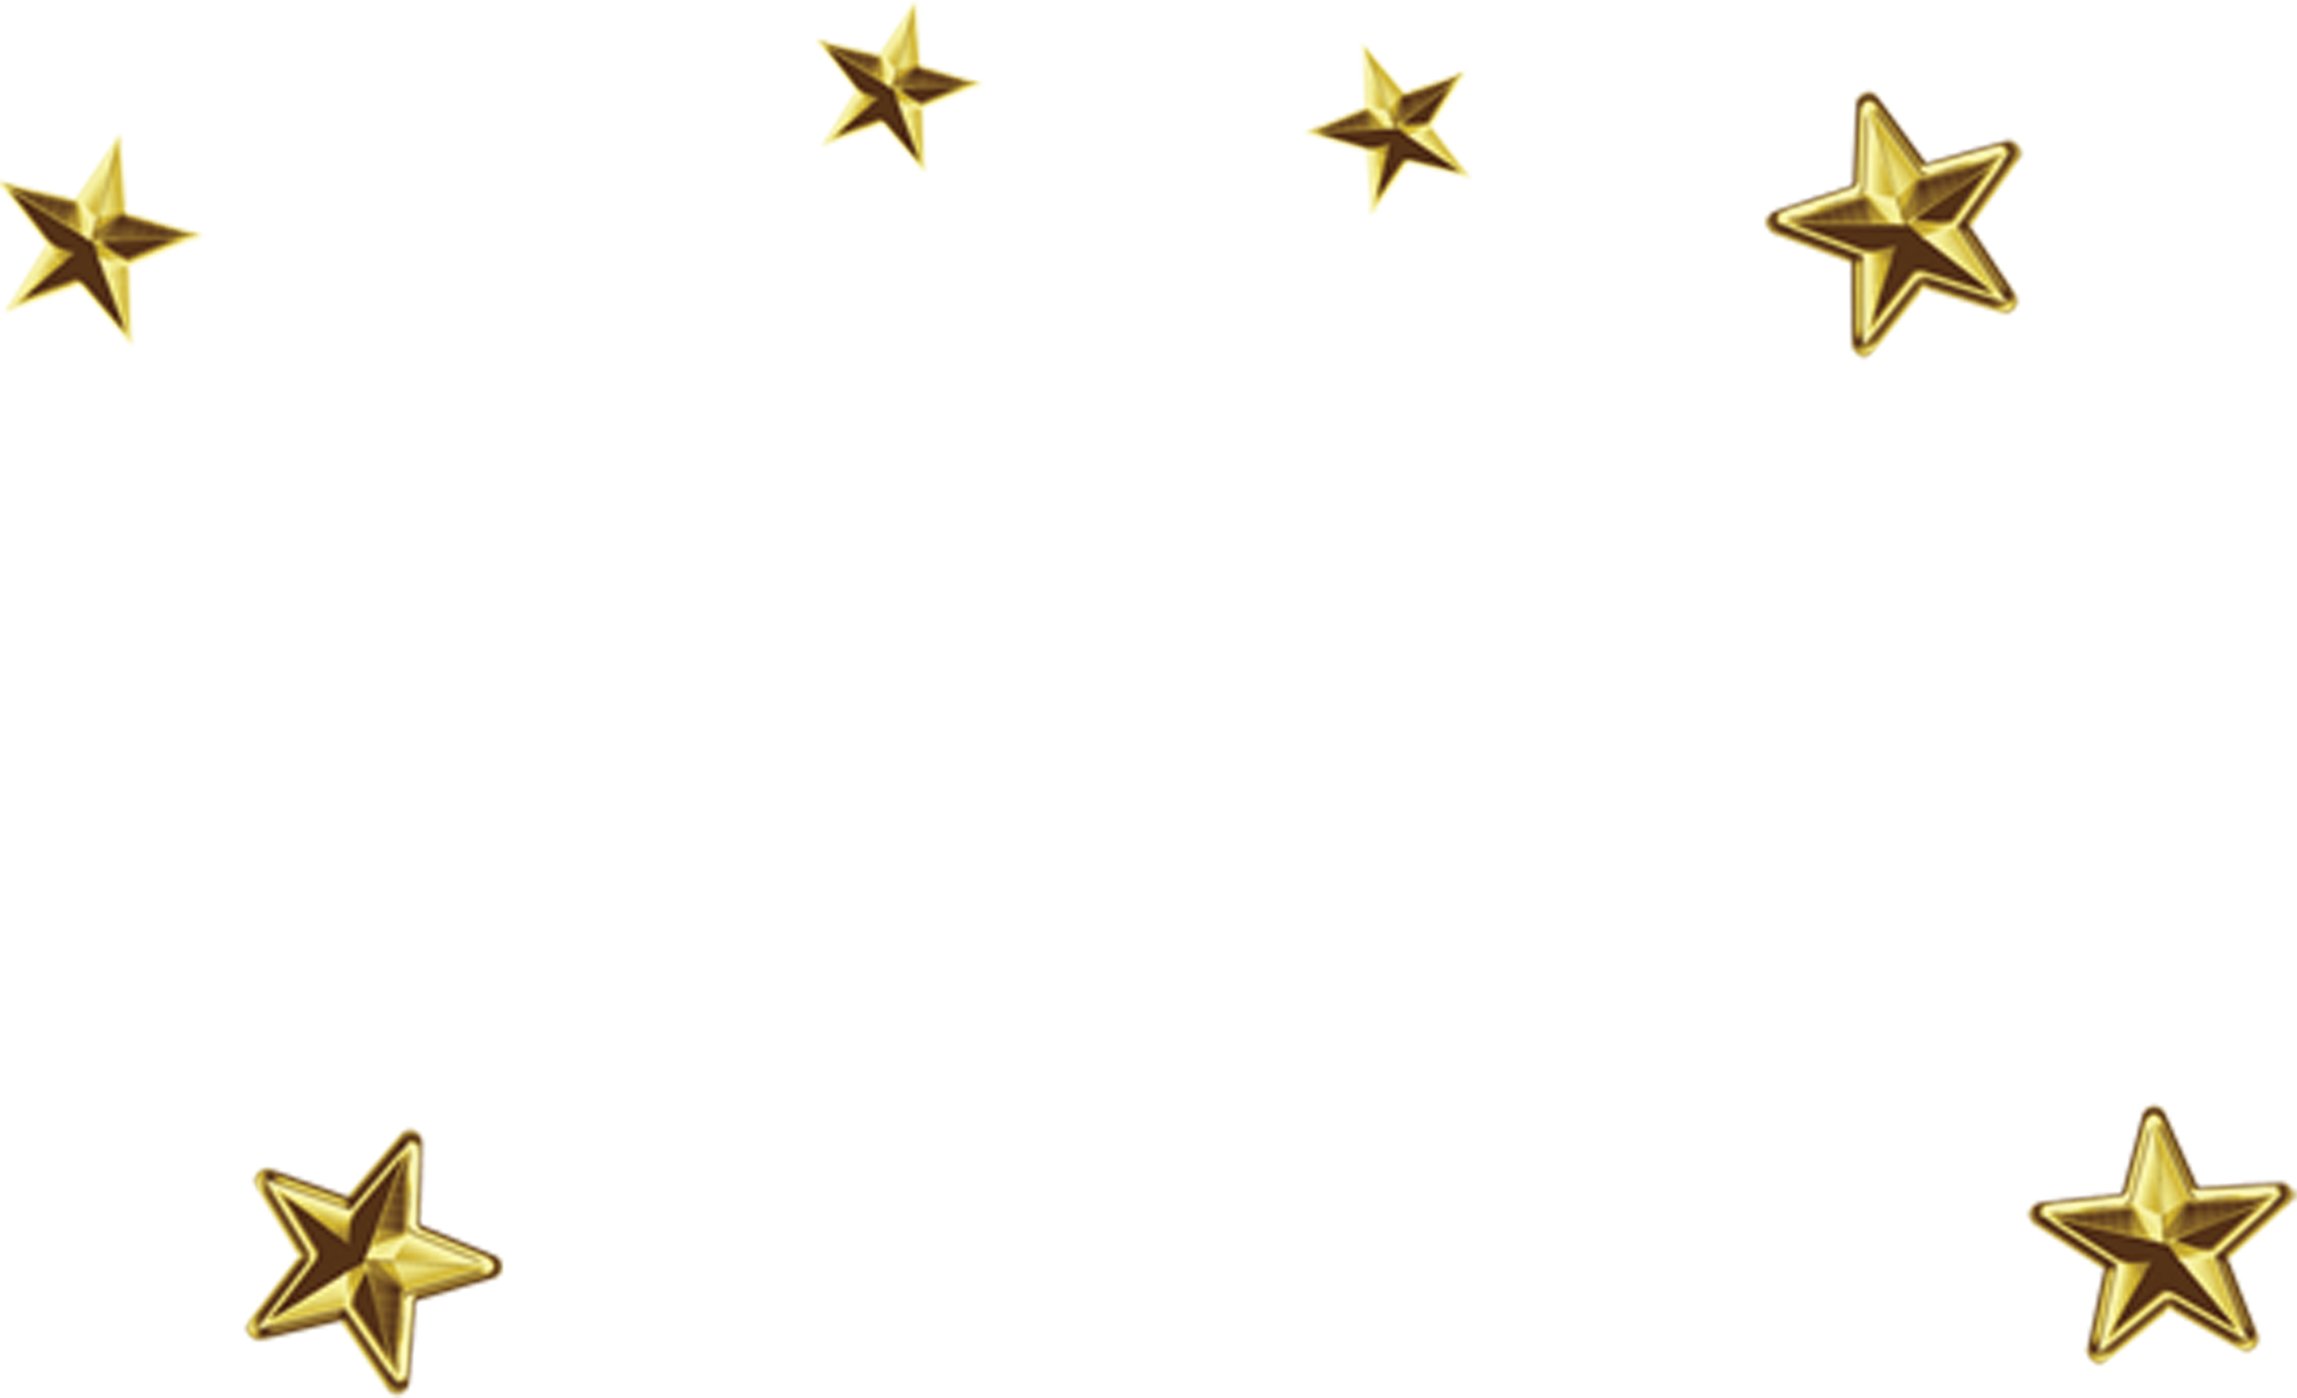 Transparent gold star clip art - Gold Stars Png Clipart , Png Download - Gold Stars Png Hd